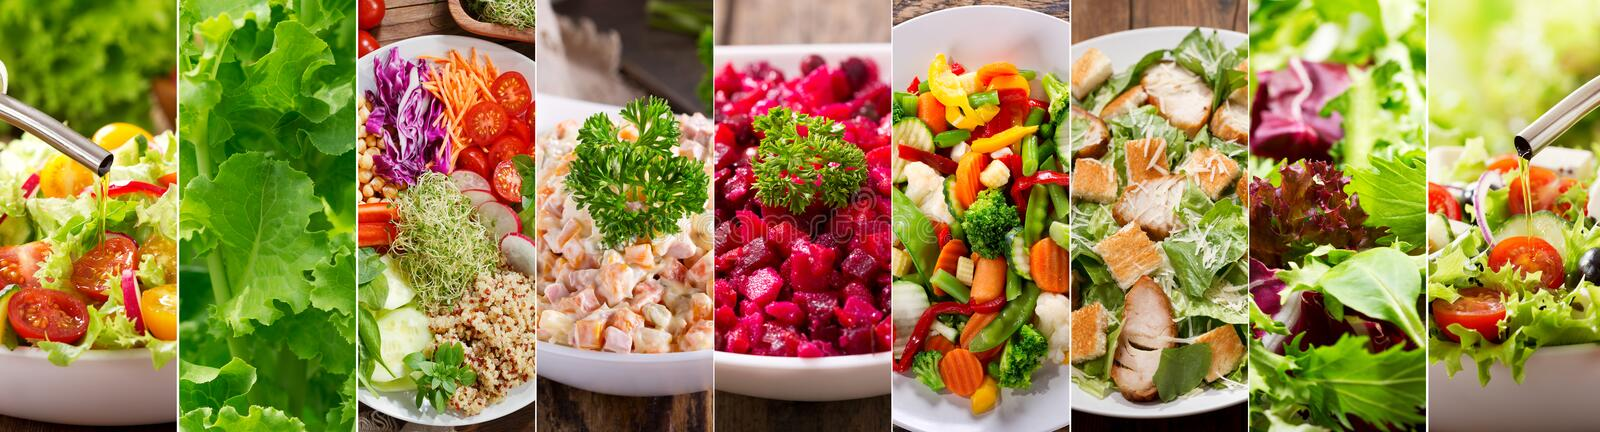 Collage of various types plates of salad royalty free stock images